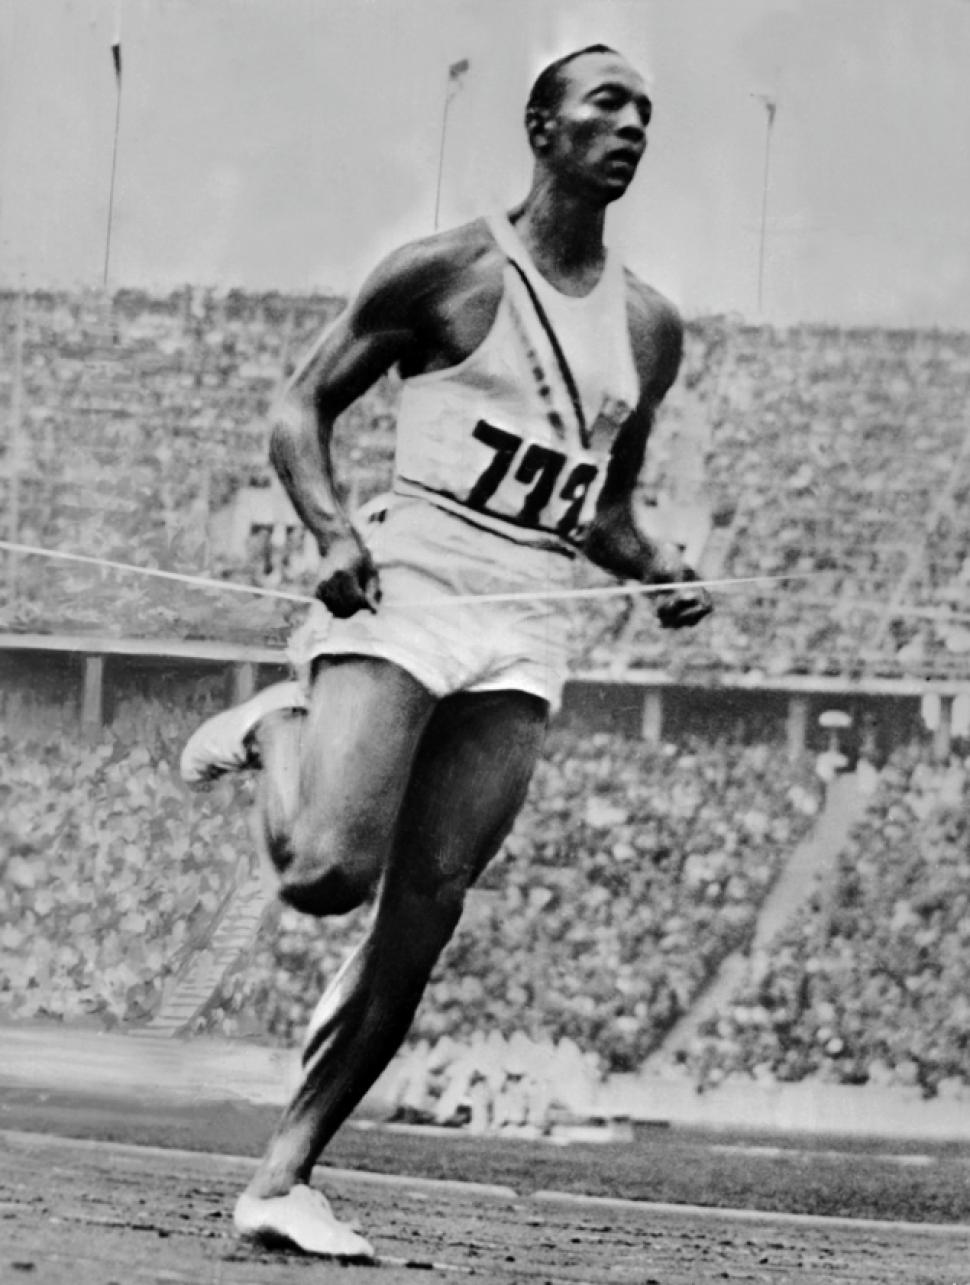 a description of jesse owens as the best track athlete at the 1936 olympics Gold medal winner, olympic champion, track and field track & field athlete 50 out of 5 stars 1 $995 jesse owens jesse owens 1936 olympics.